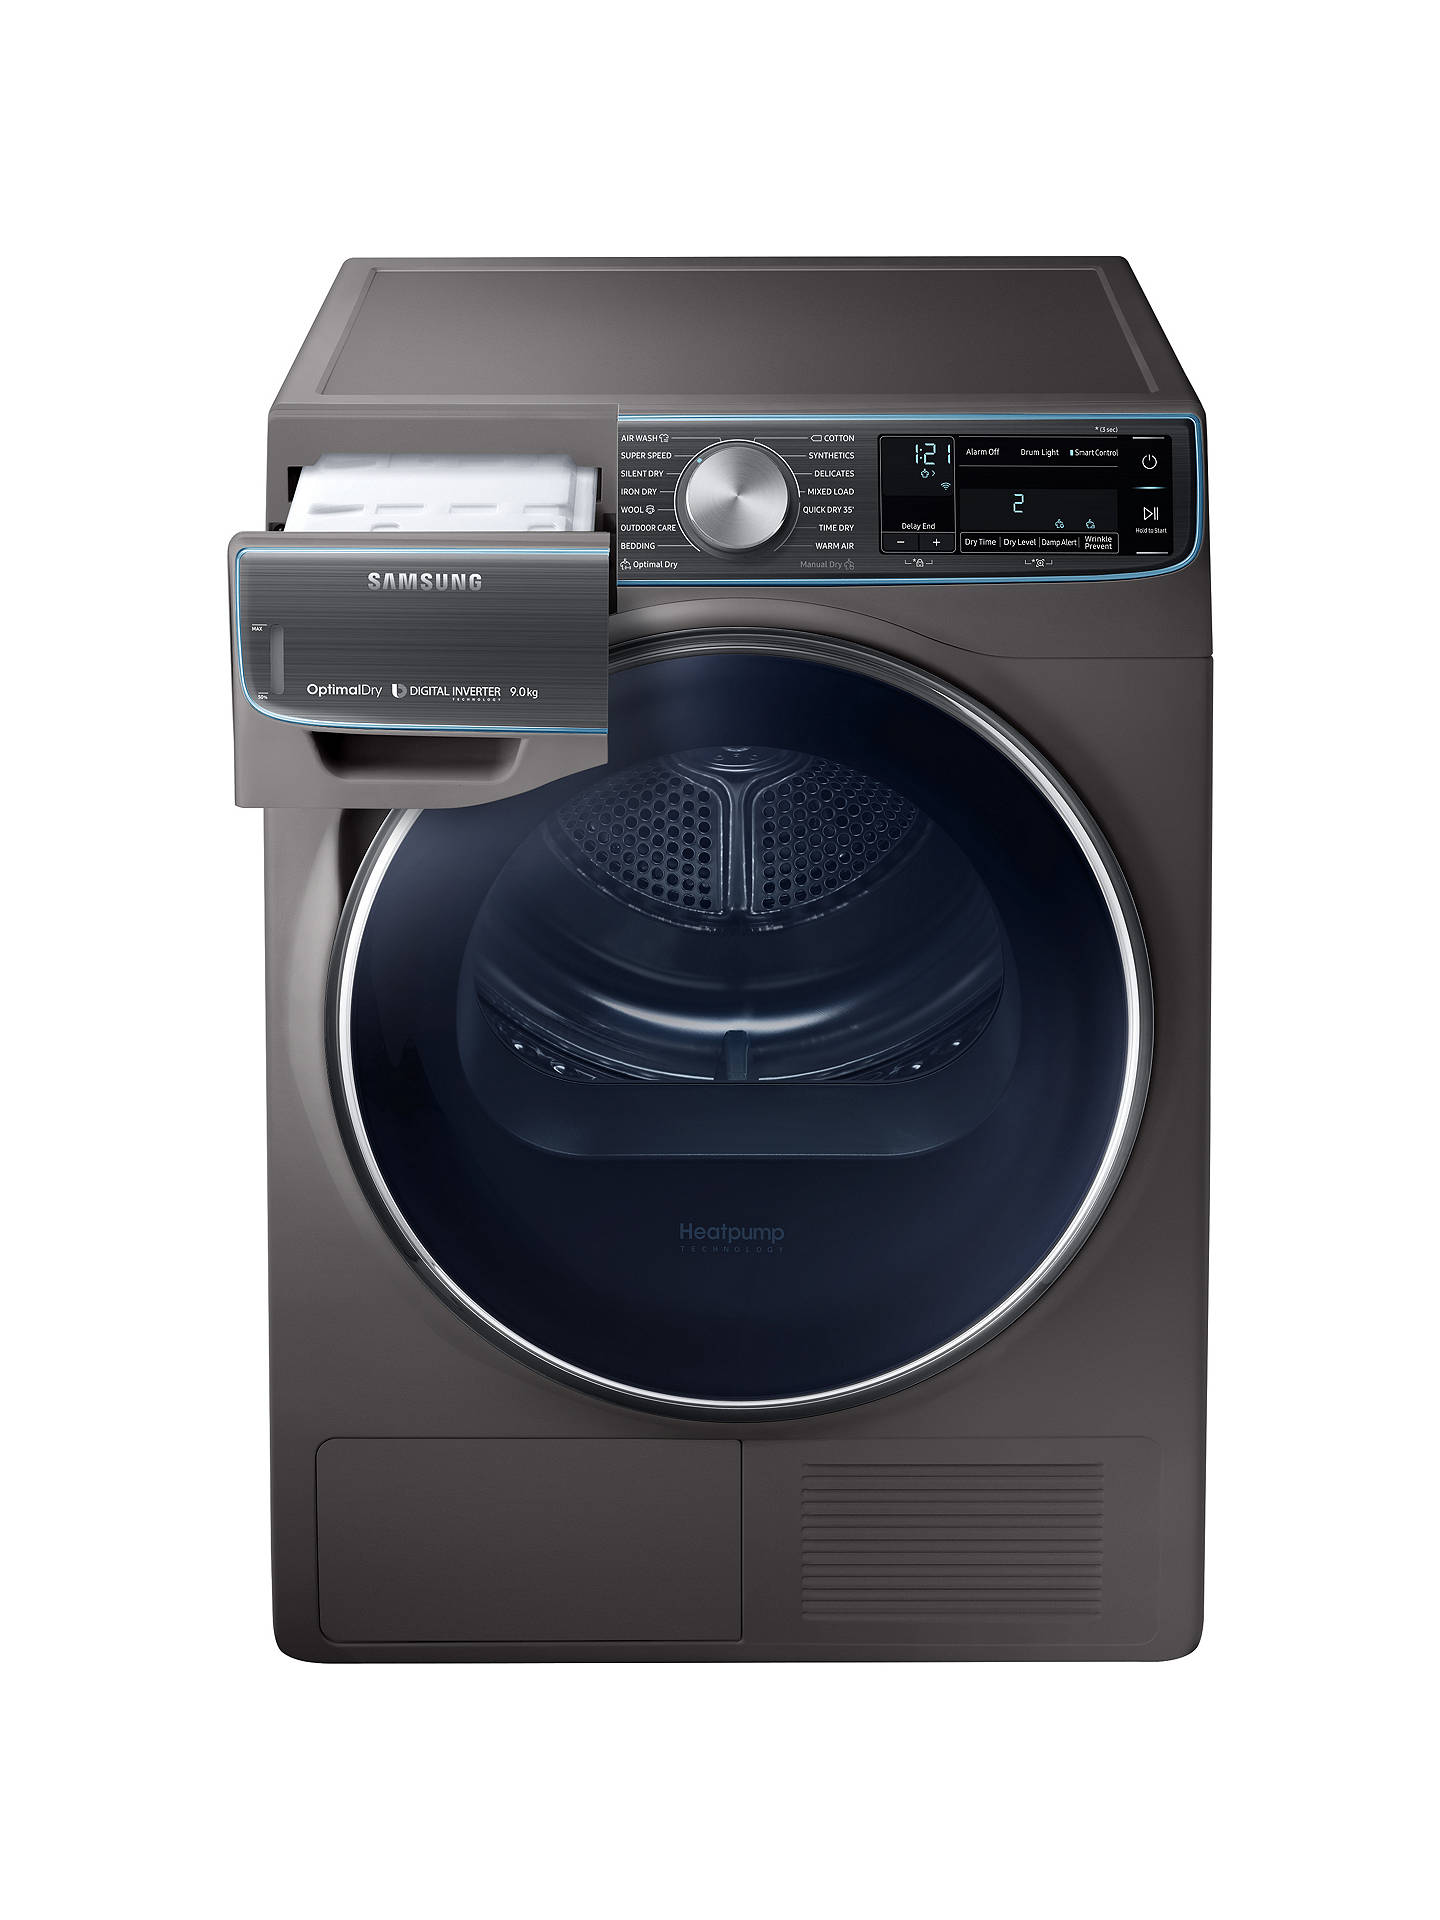 BuySamsung DV90N8288AX/EU Freestanding Heat Pump Tumble Dryer, 9kg Load, A+++ Energy Rating, Graphite Online at johnlewis.com